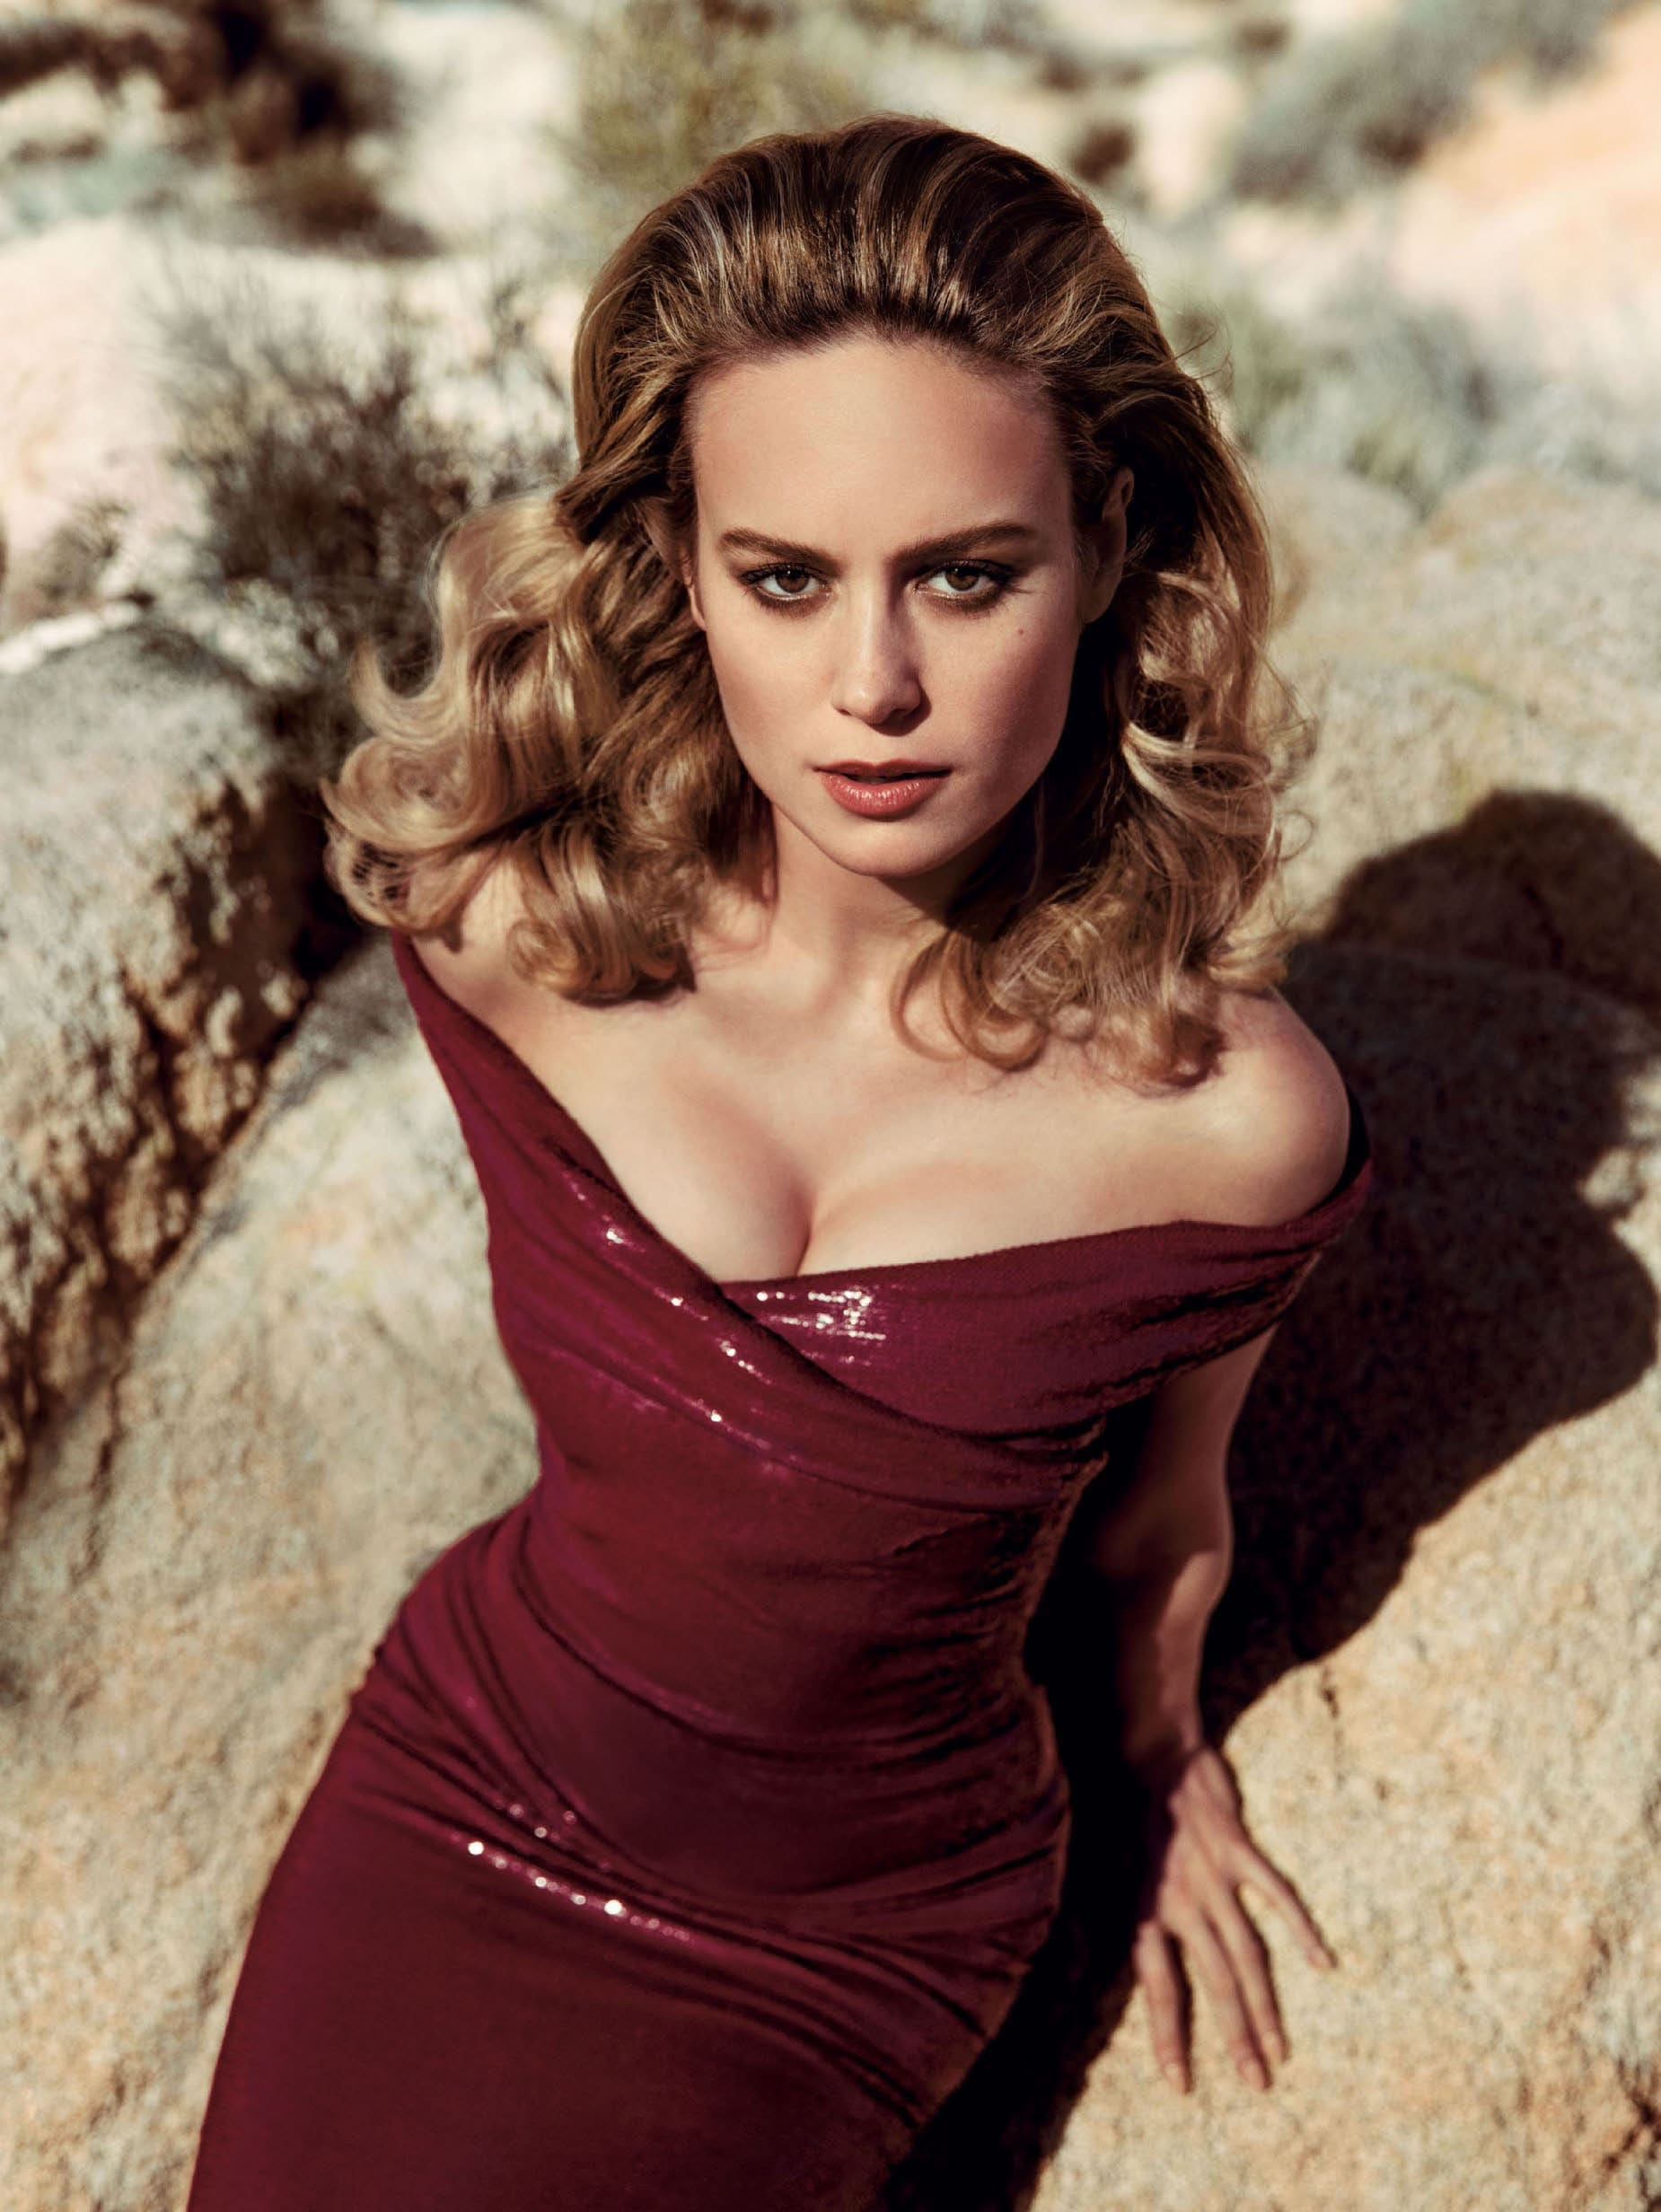 52 Hot And Sexy Pictures Of Brie Larson - Marvels Sexy